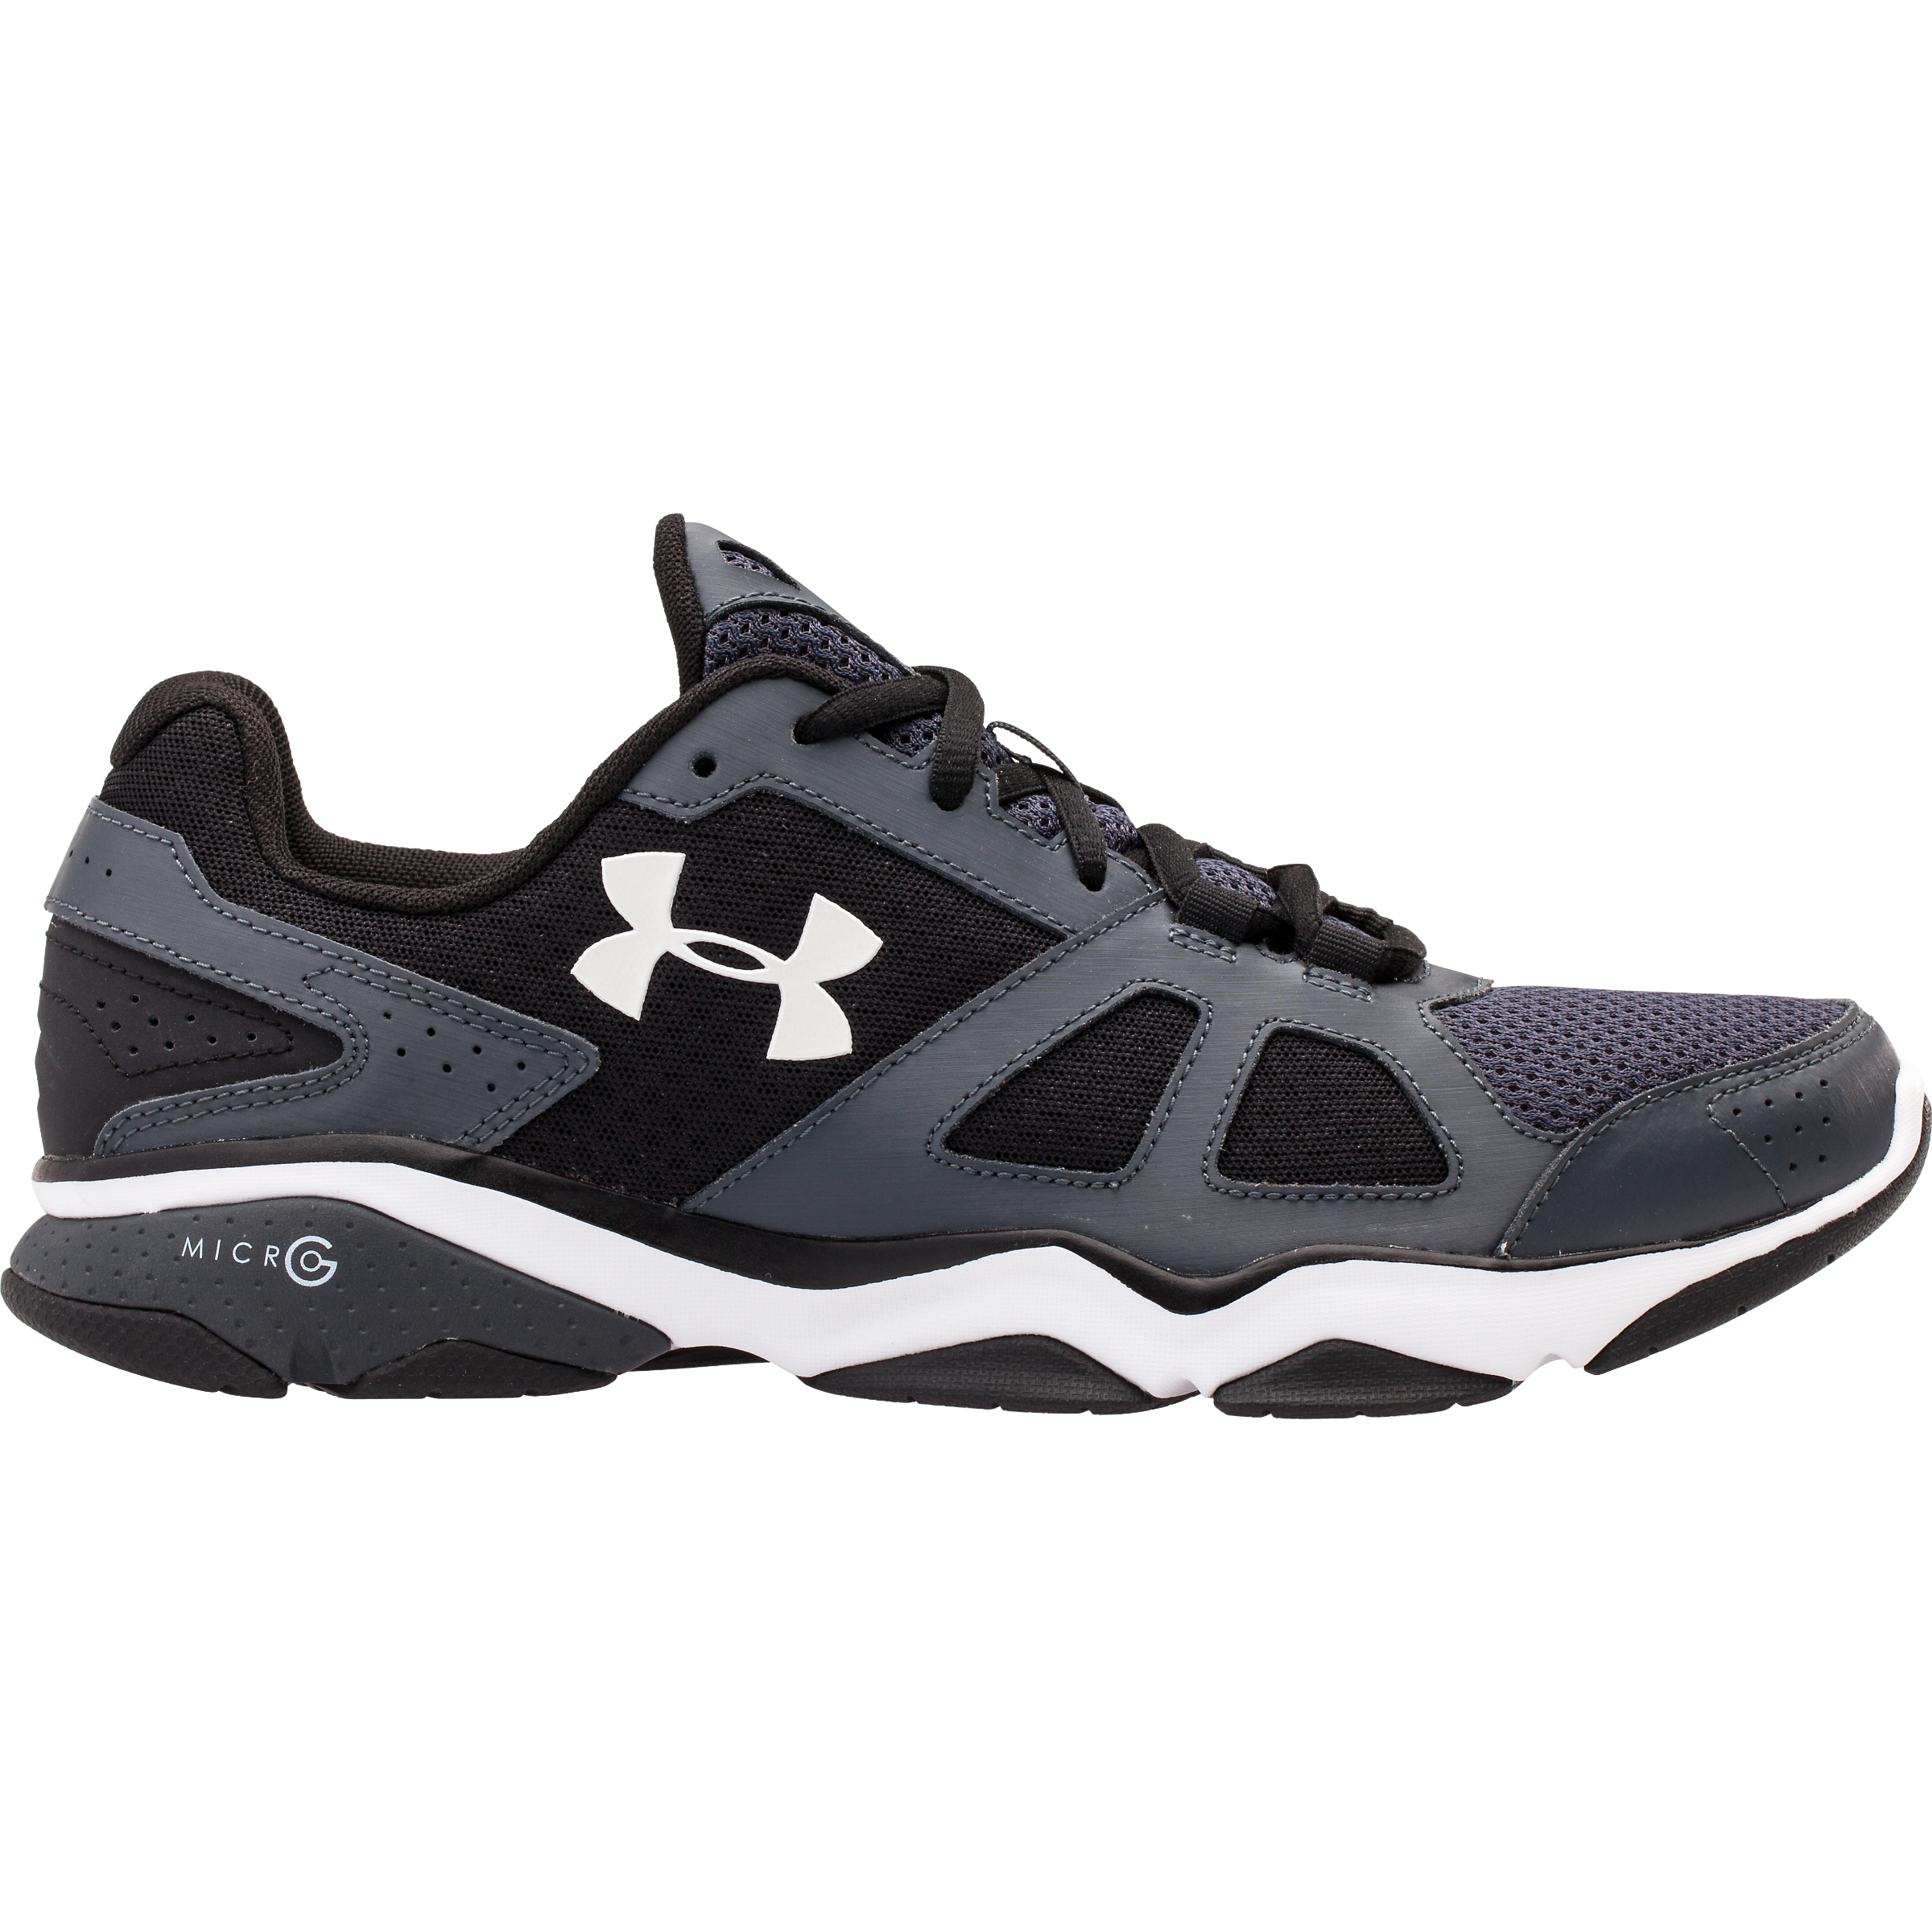 8d6f760d344 under armour tennis shoes for men cheap   OFF69% The Largest Catalog  Discounts